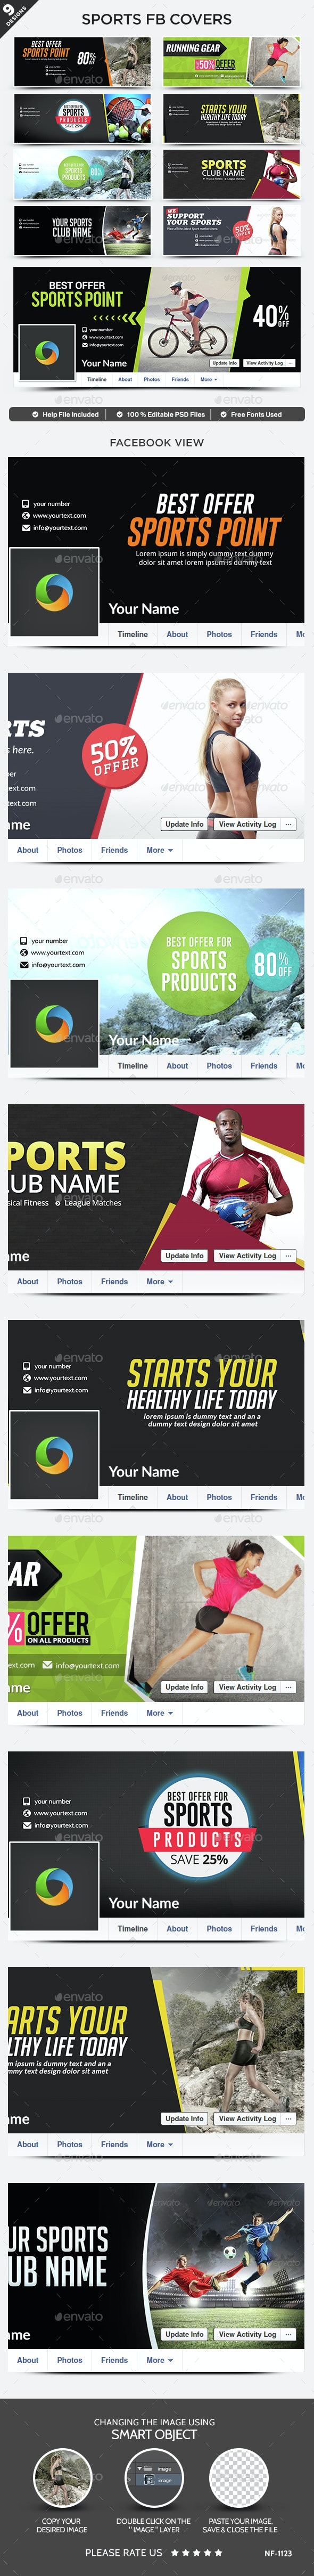 Fitness & Sports Facebook Covers - 9 Designs - Facebook Timeline Covers Social Media